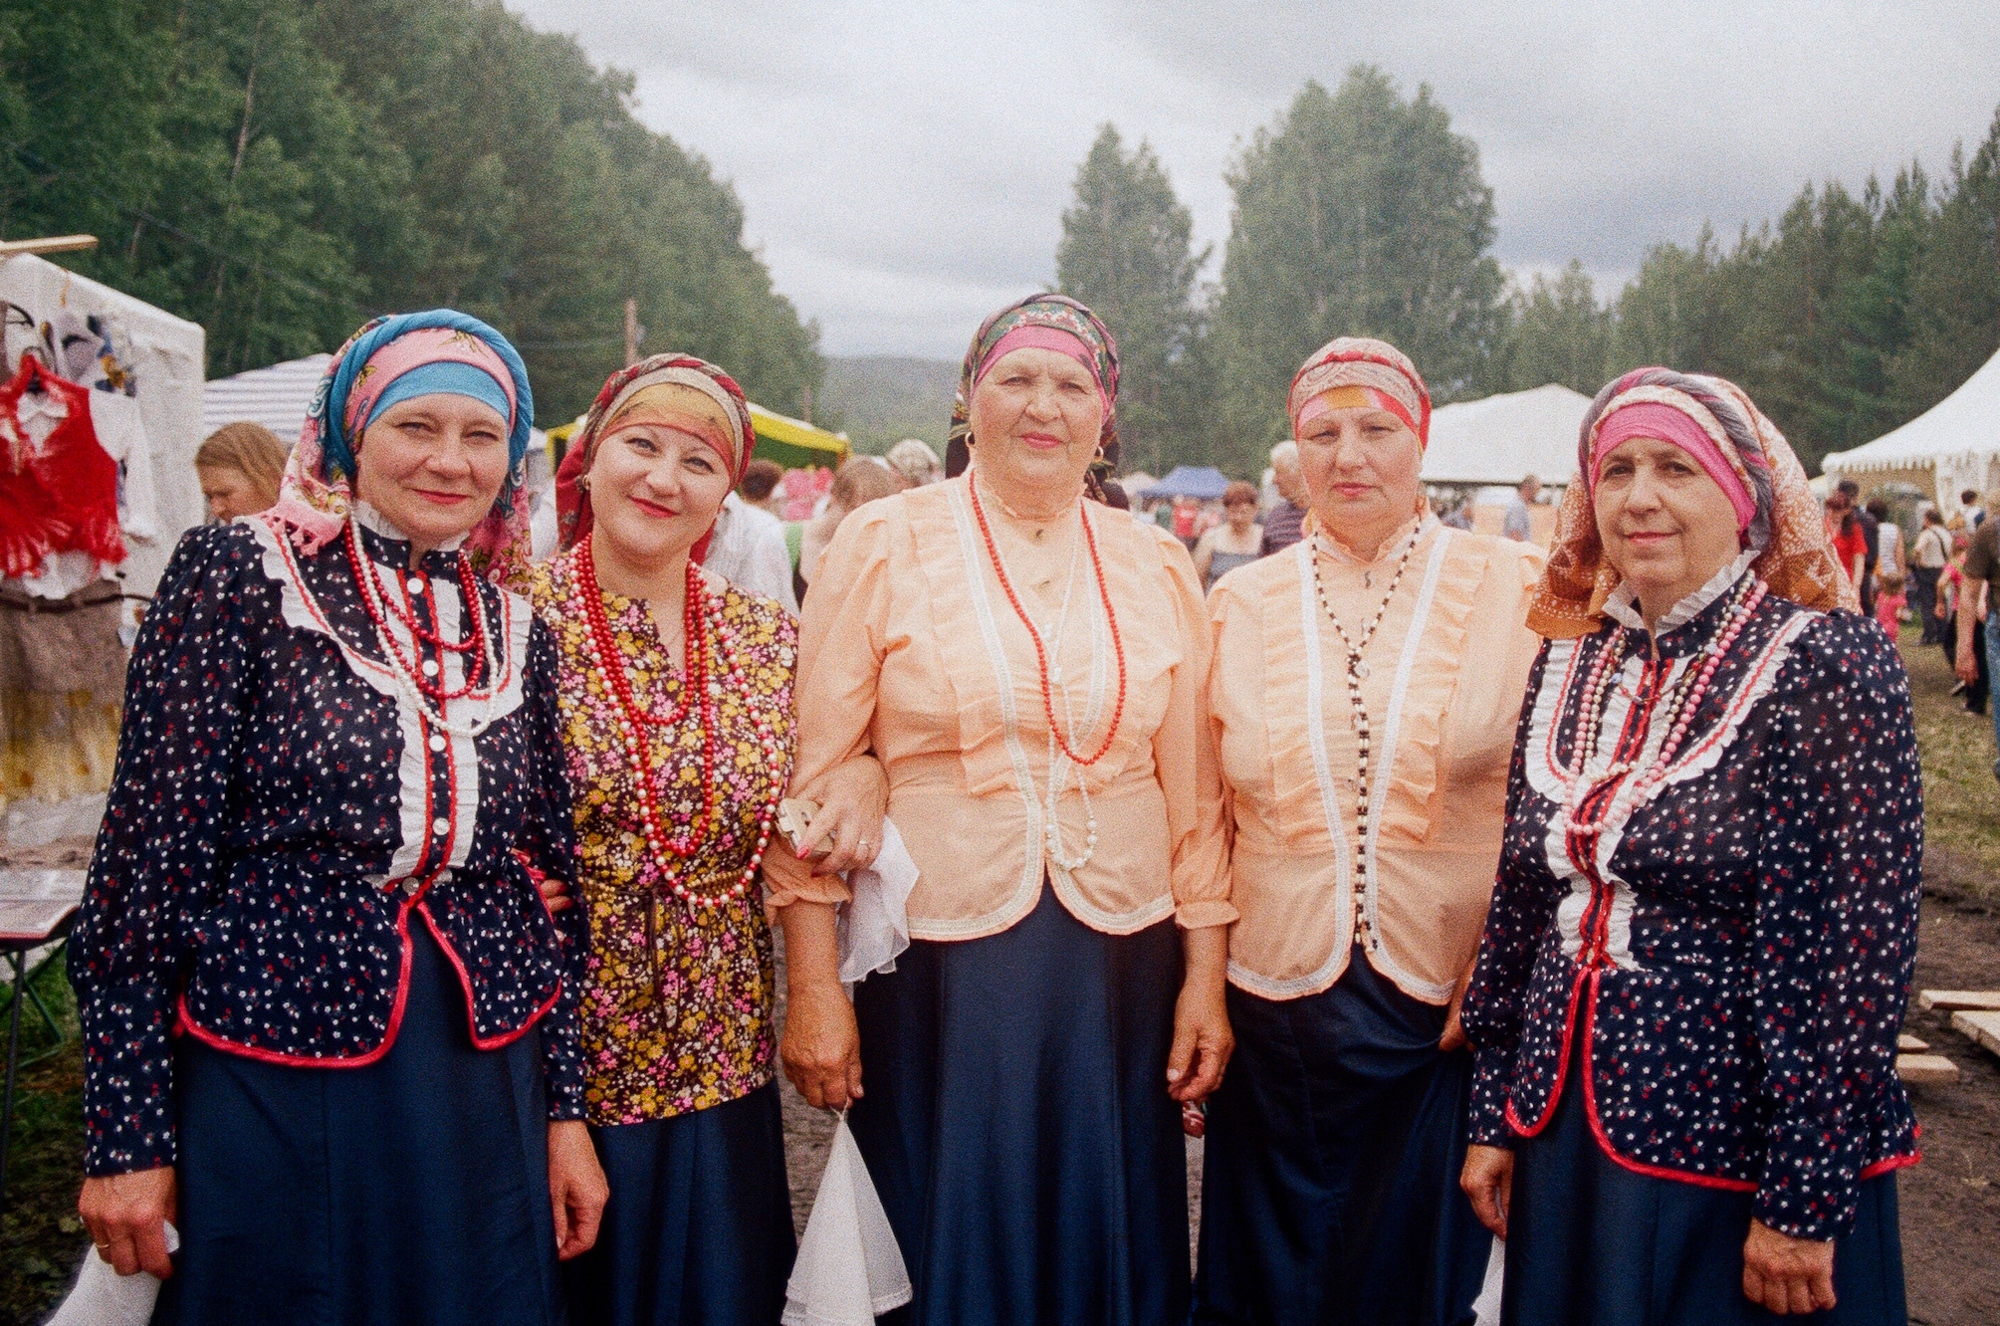 Cossack female collective. Often I've met performing or crafting groups initiated in rural regions. One of the intentions is to document local creativity - flourishing within indigenous people as textile art, traditional music or dance. (to learn more   minorityrights.org/minorities/cossacks  )